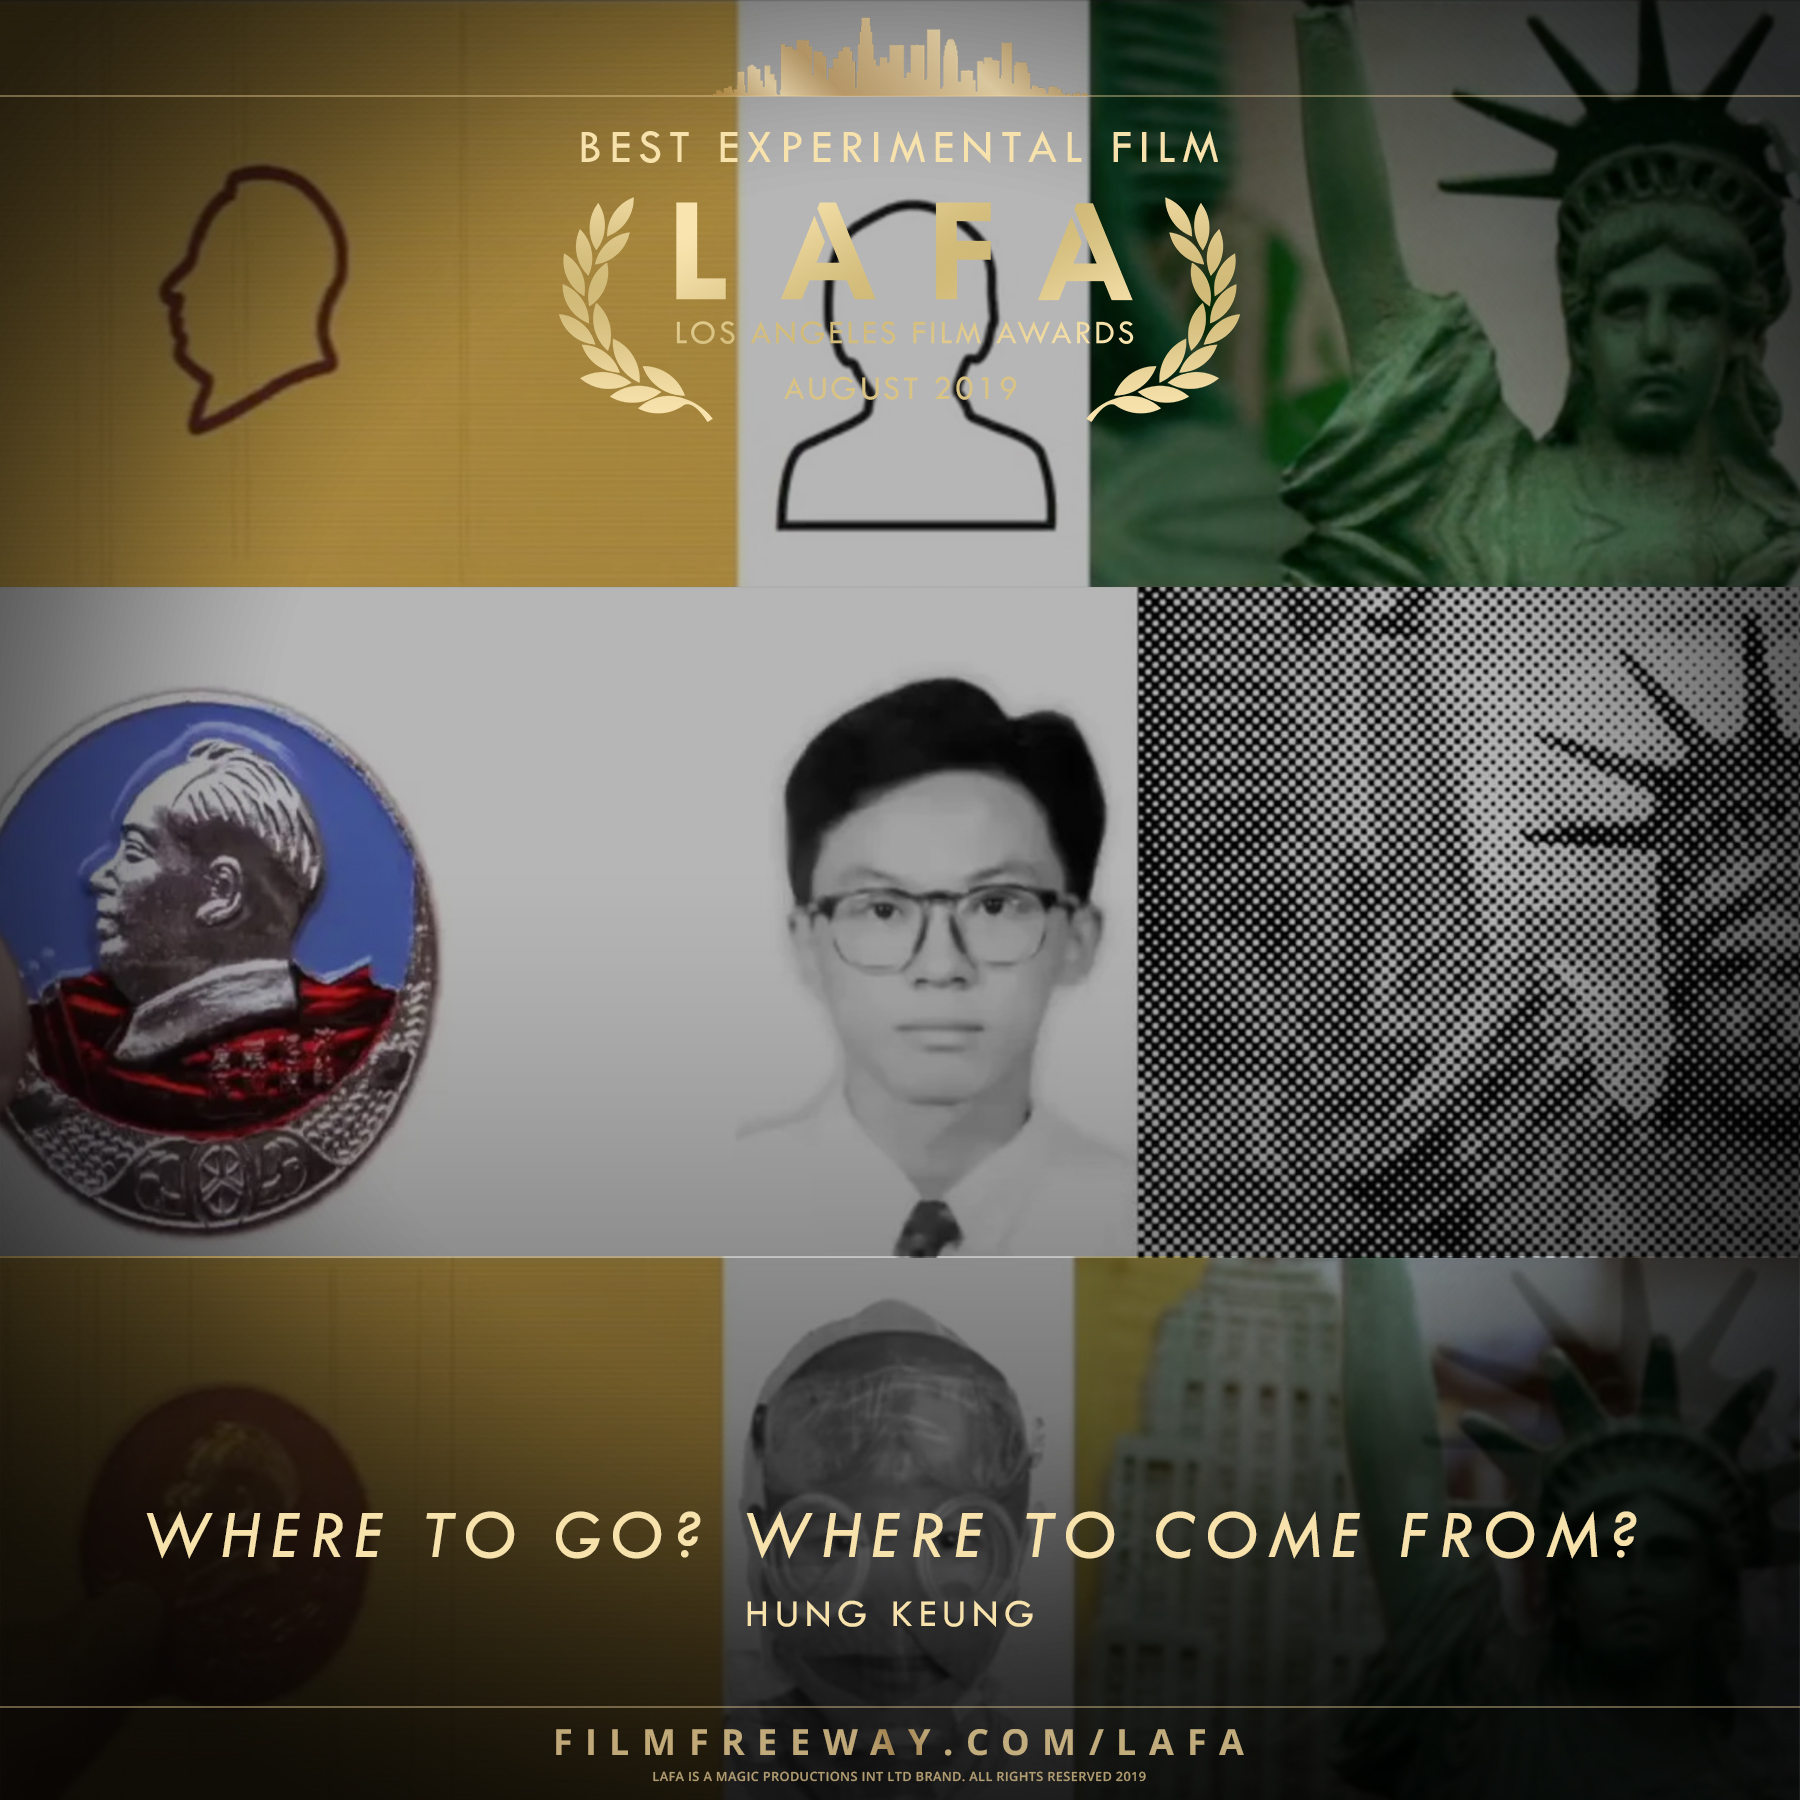 WHERE TO GO WHERE TO COME FROM design